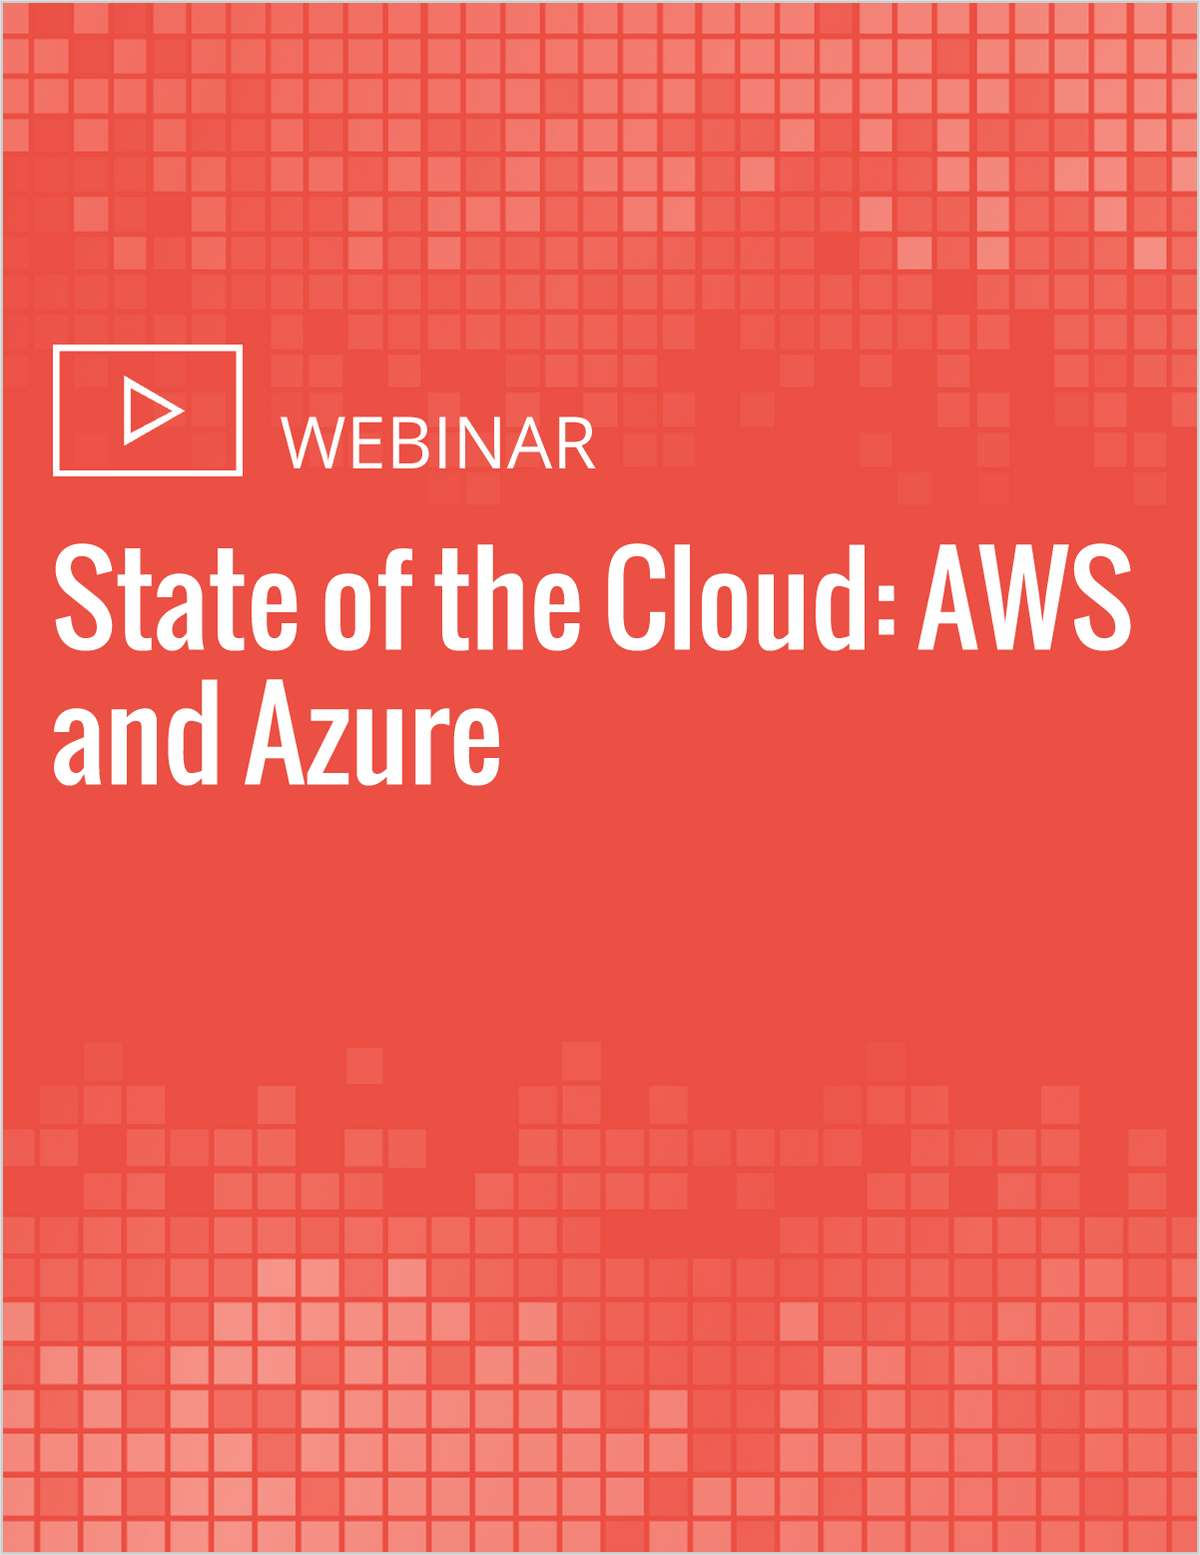 State of the Cloud: AWS and Azure